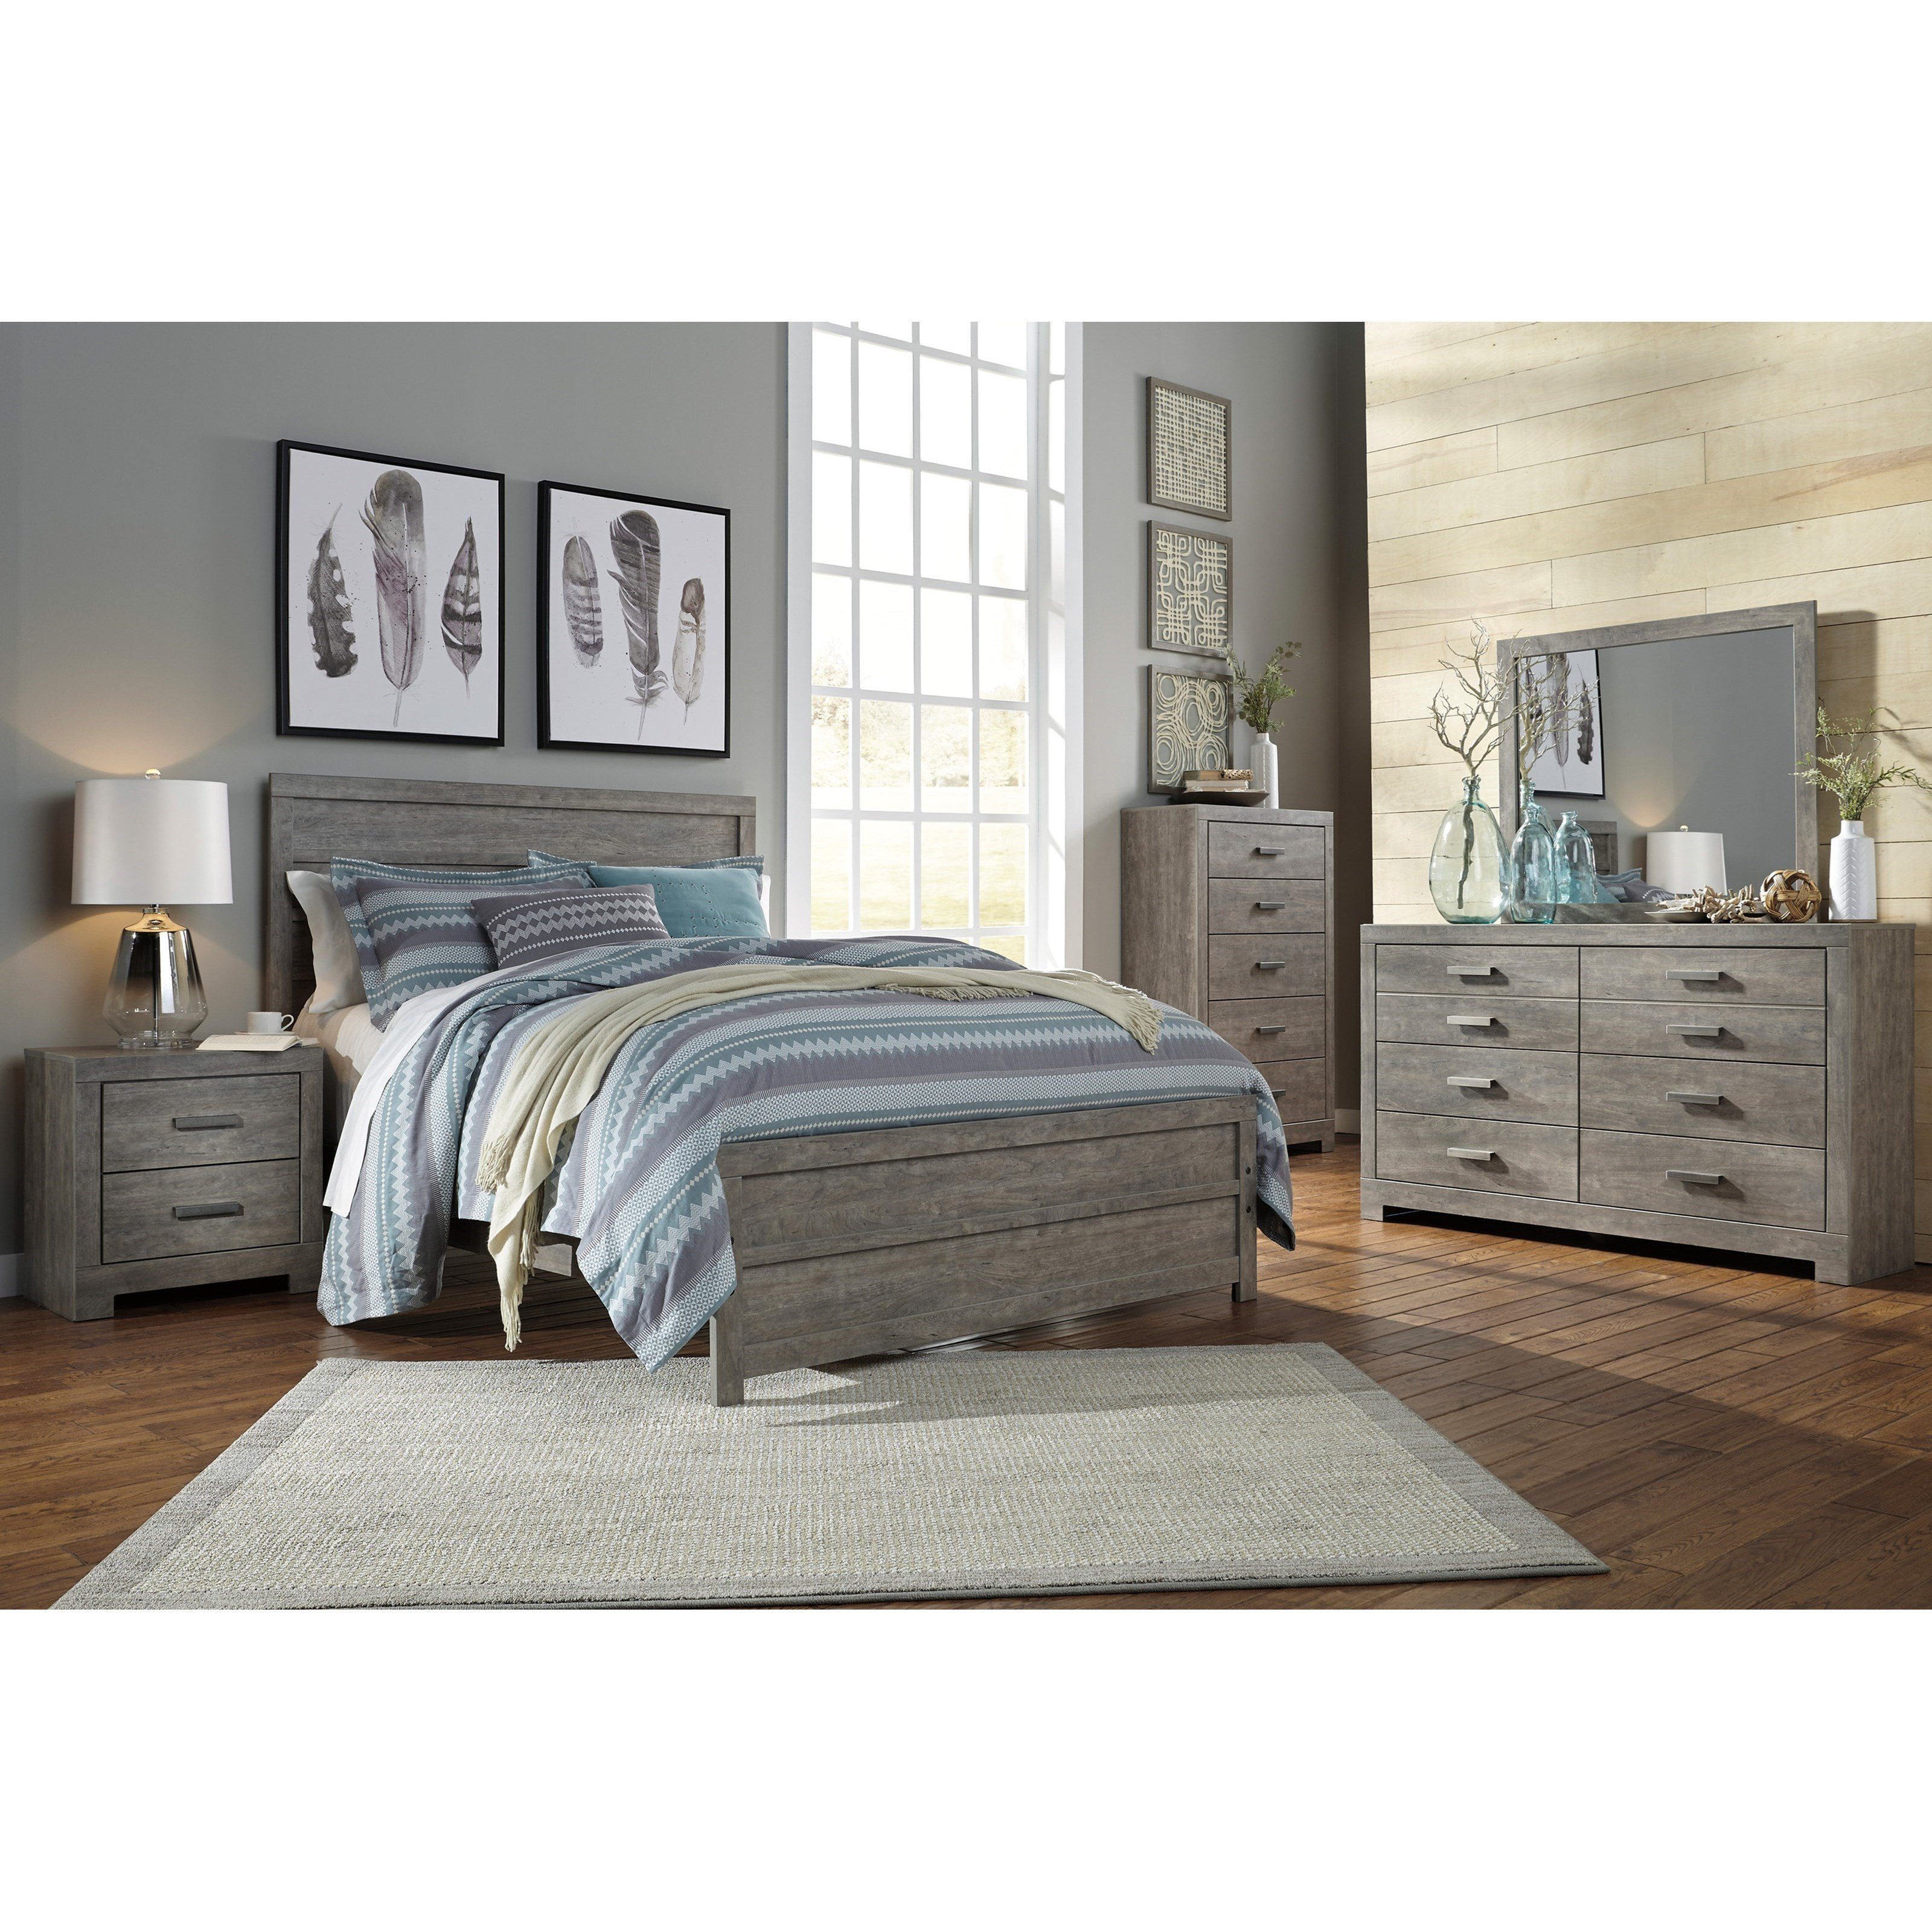 Best Signature Design By Ashley Culverbach Queen Bedroom Group Del Sol Furniture Bedroom Groups With Pictures